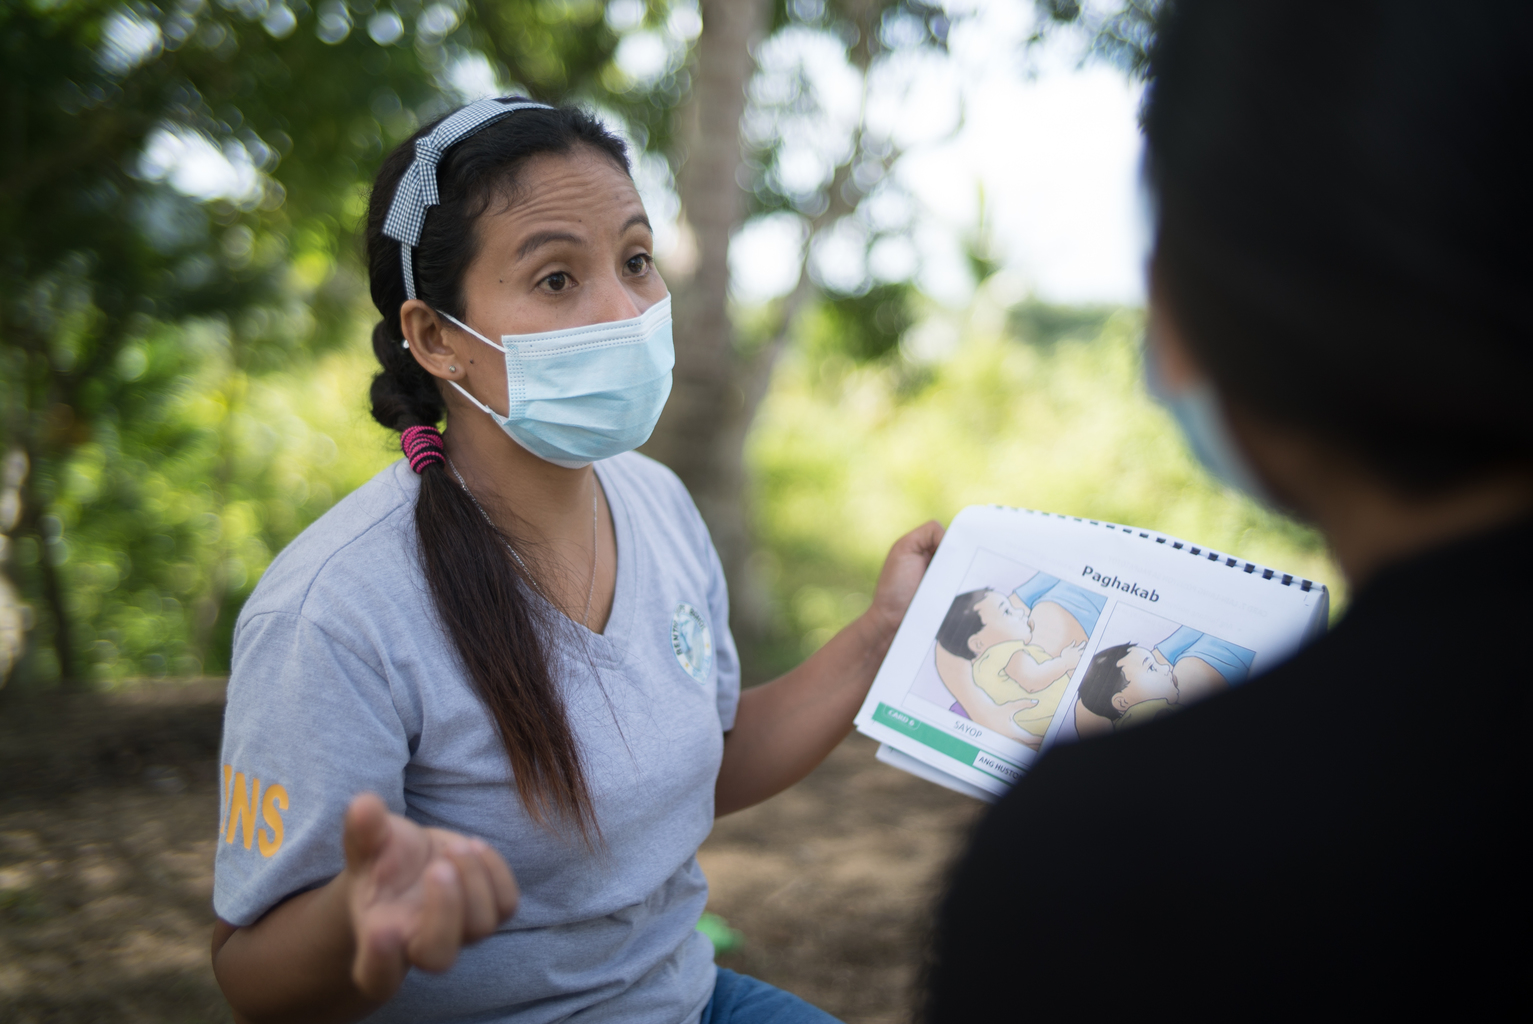 Woman wears a mask outside and holds a booklet during a mother-to-mother support group session in the Philippines